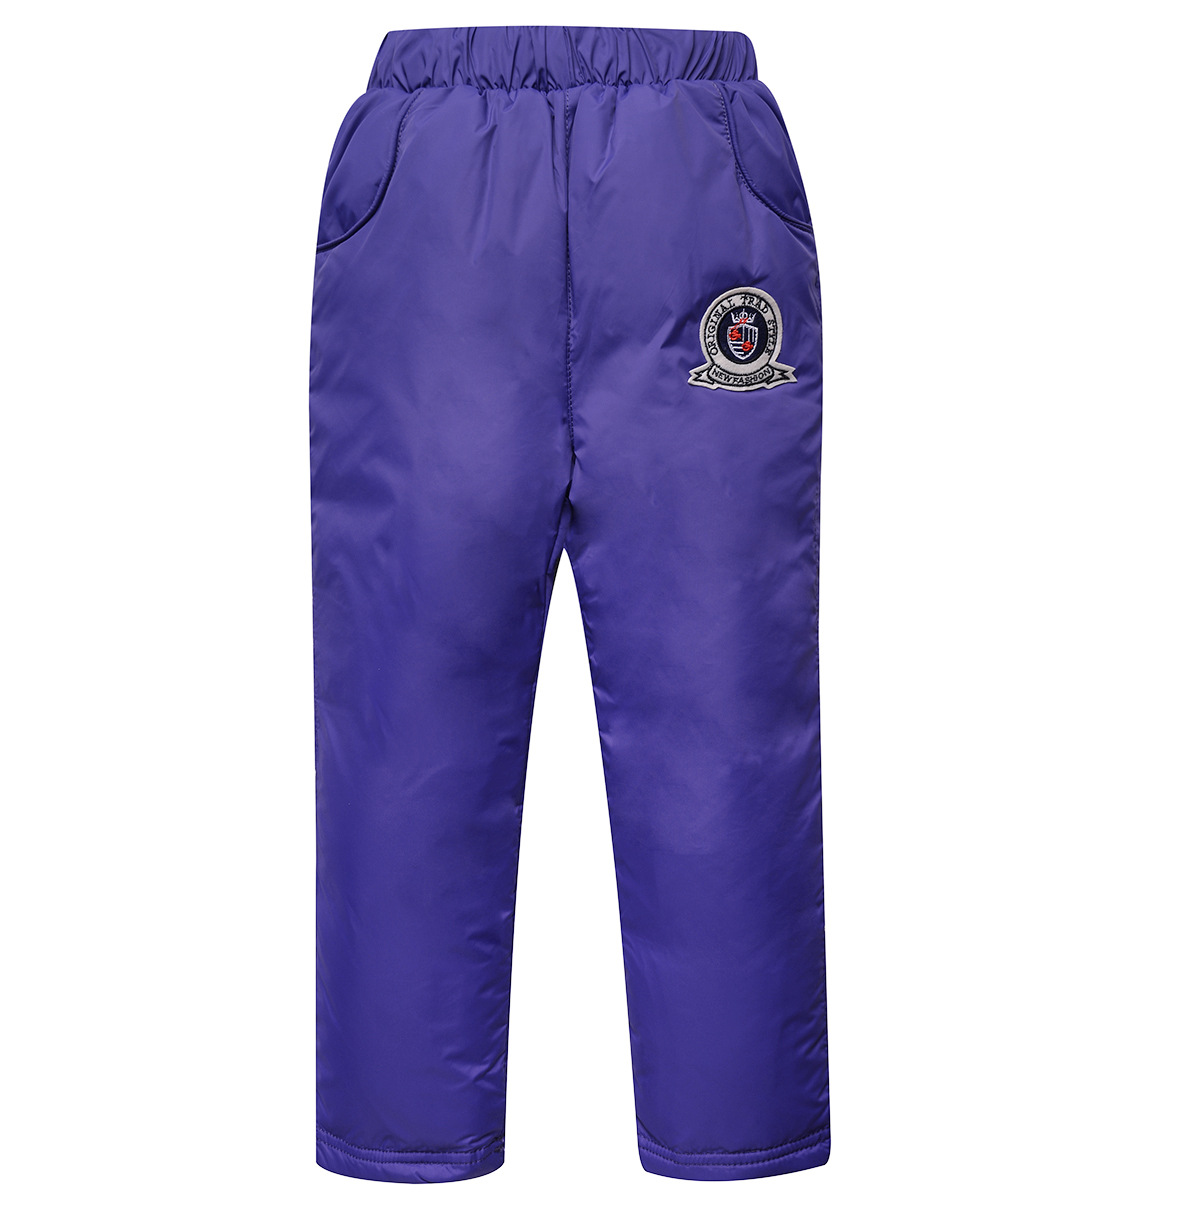 warm winter children down pants boy with thickening cuhk girl wears outside the tank down pants manufacturer undertakeswarm winter children down pants boy with thickening cuhk girl wears outside the tank down pants manufacturer undertakes